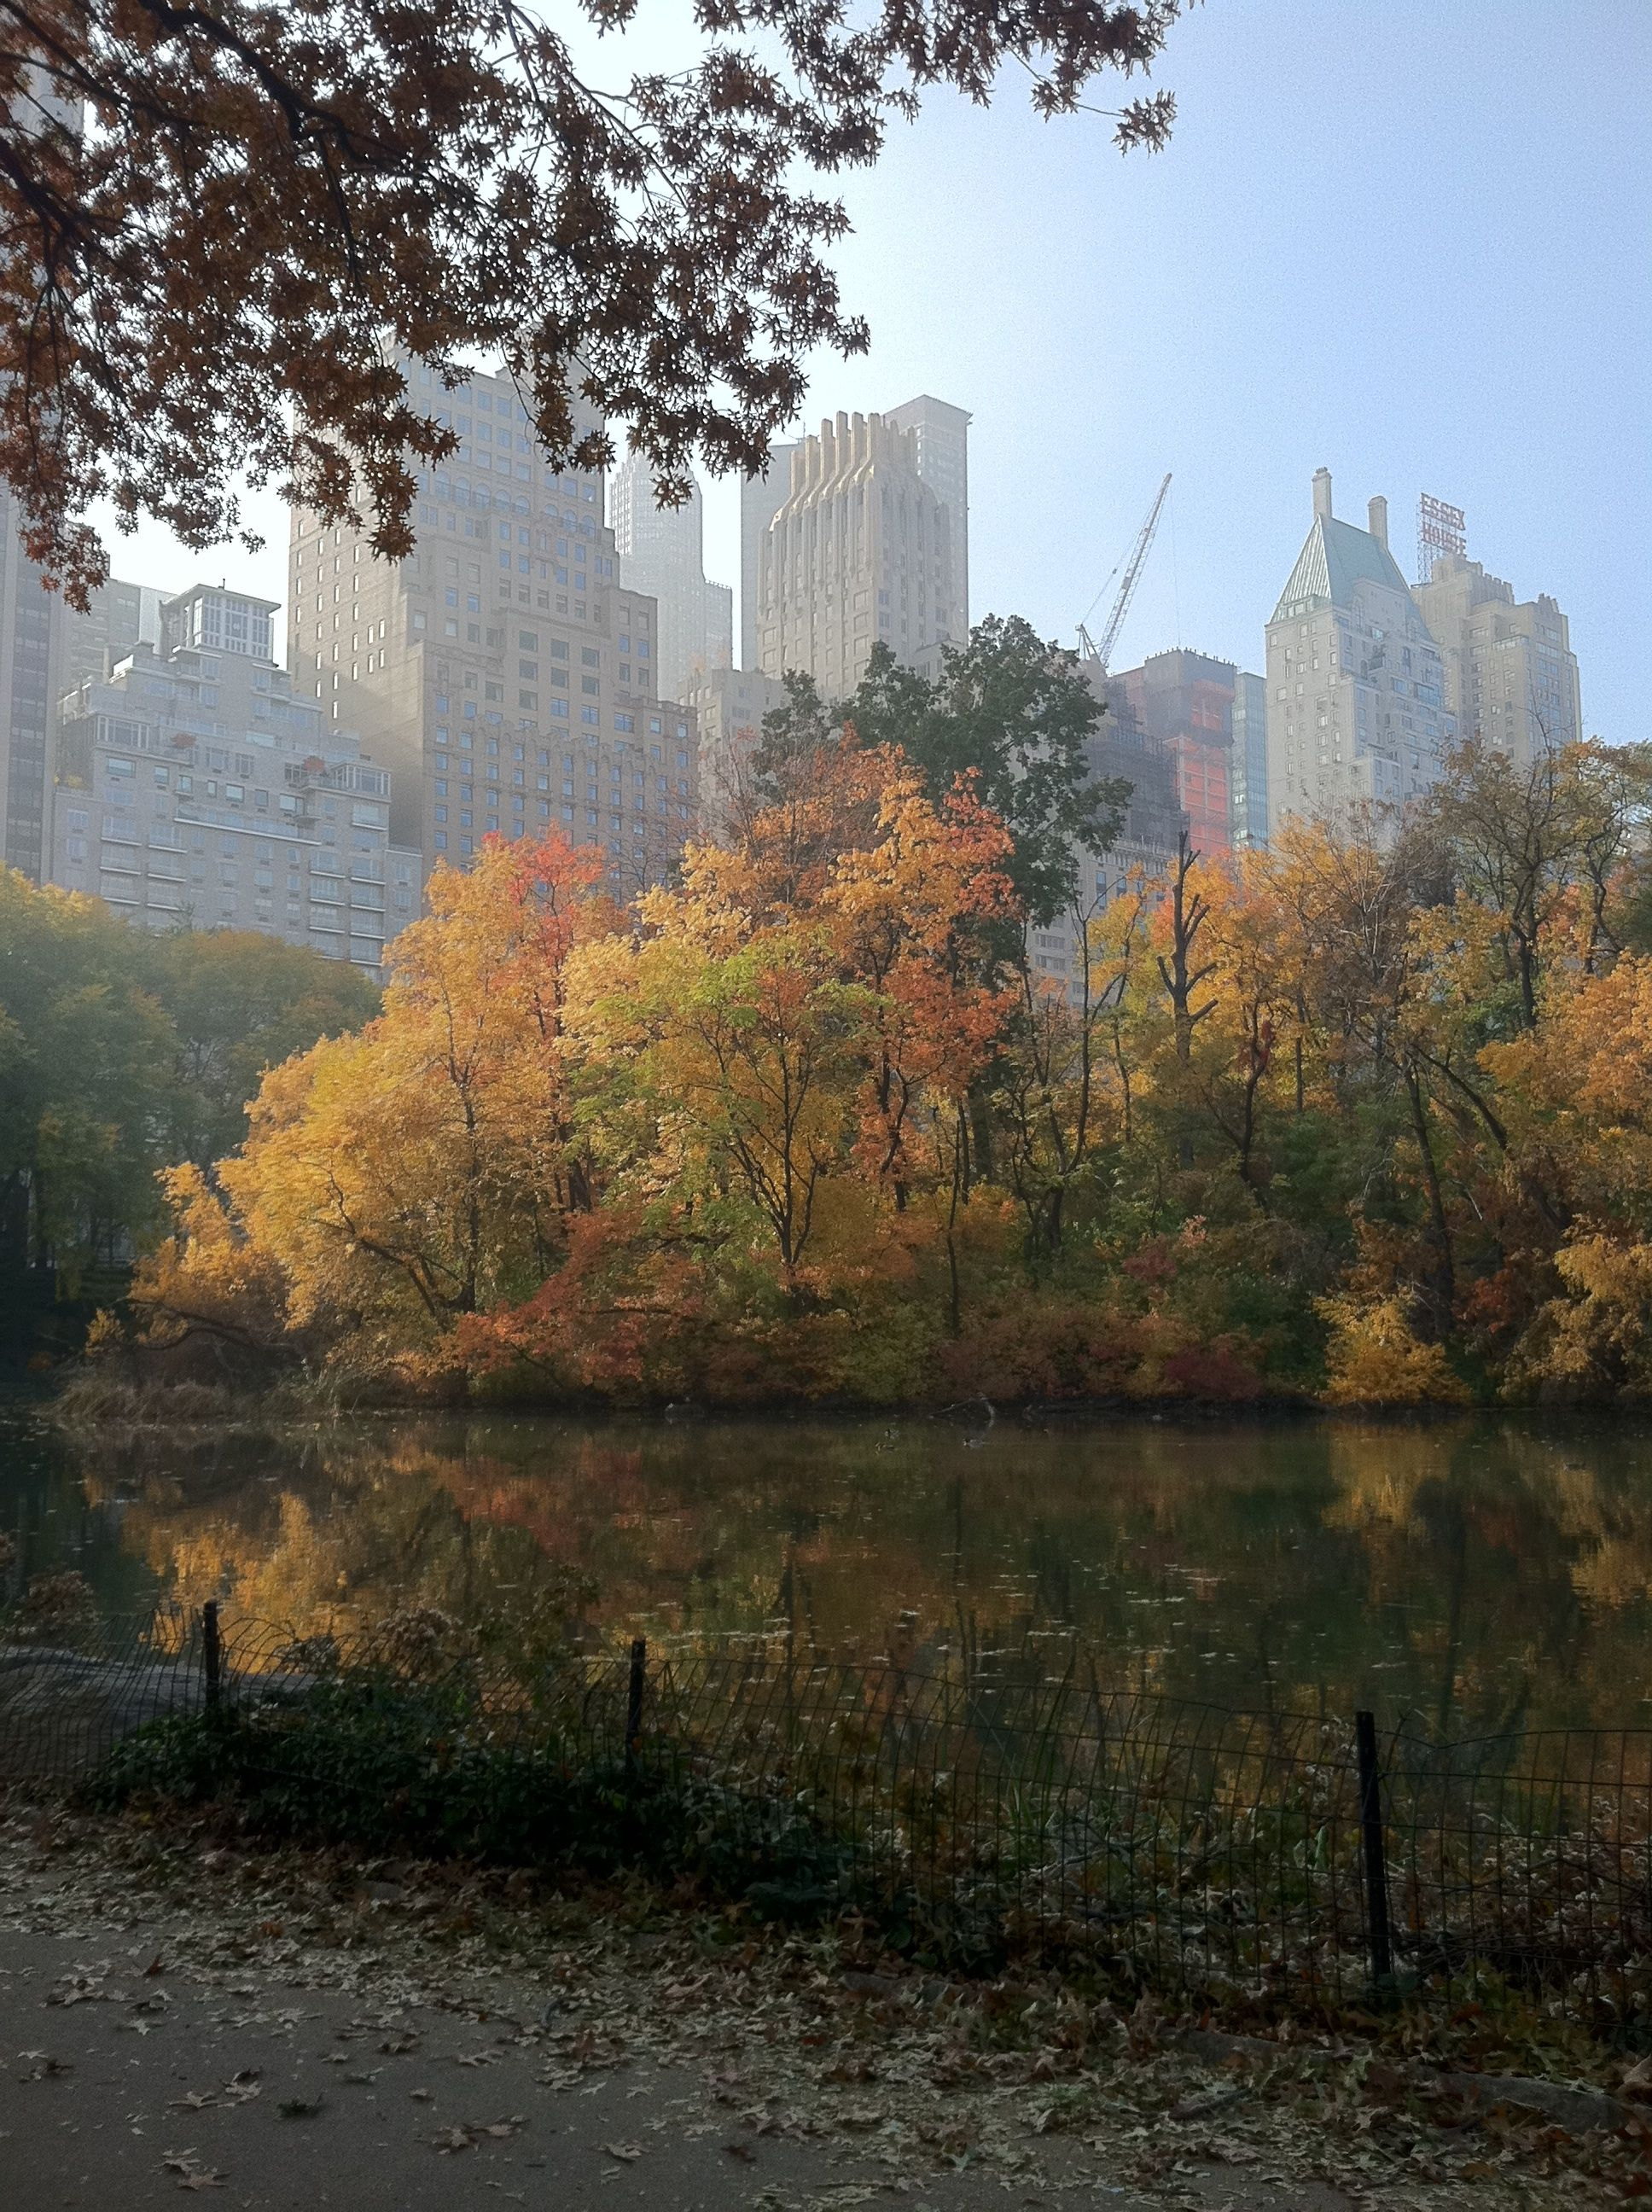 A view south from Central Park, New York City in November 2011.